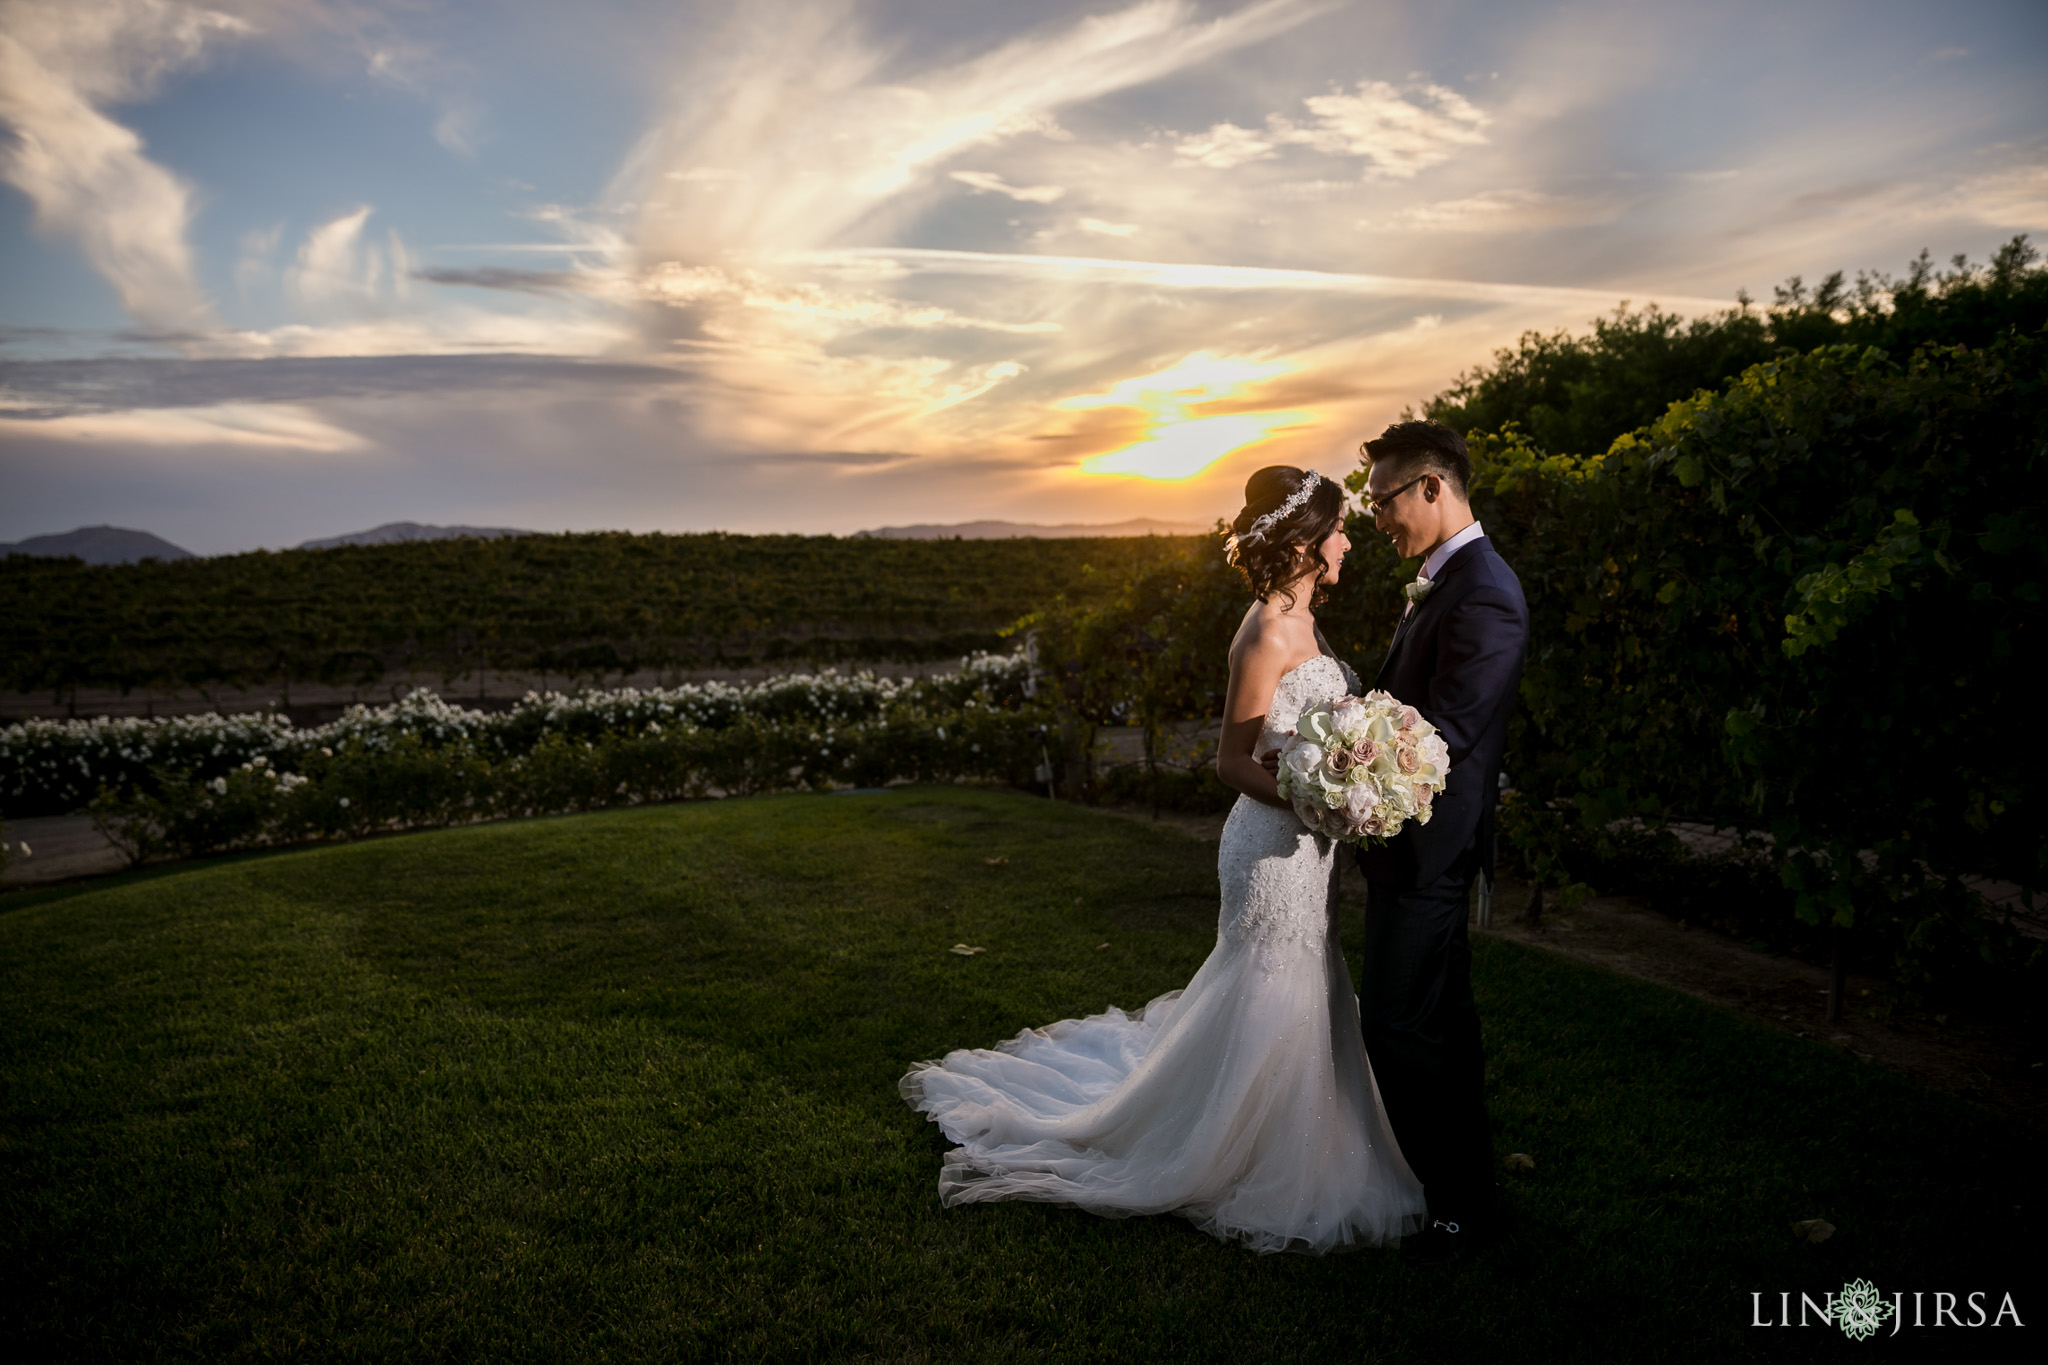 Temecula Wedding Photography: Villa De Amore Temecula Wedding